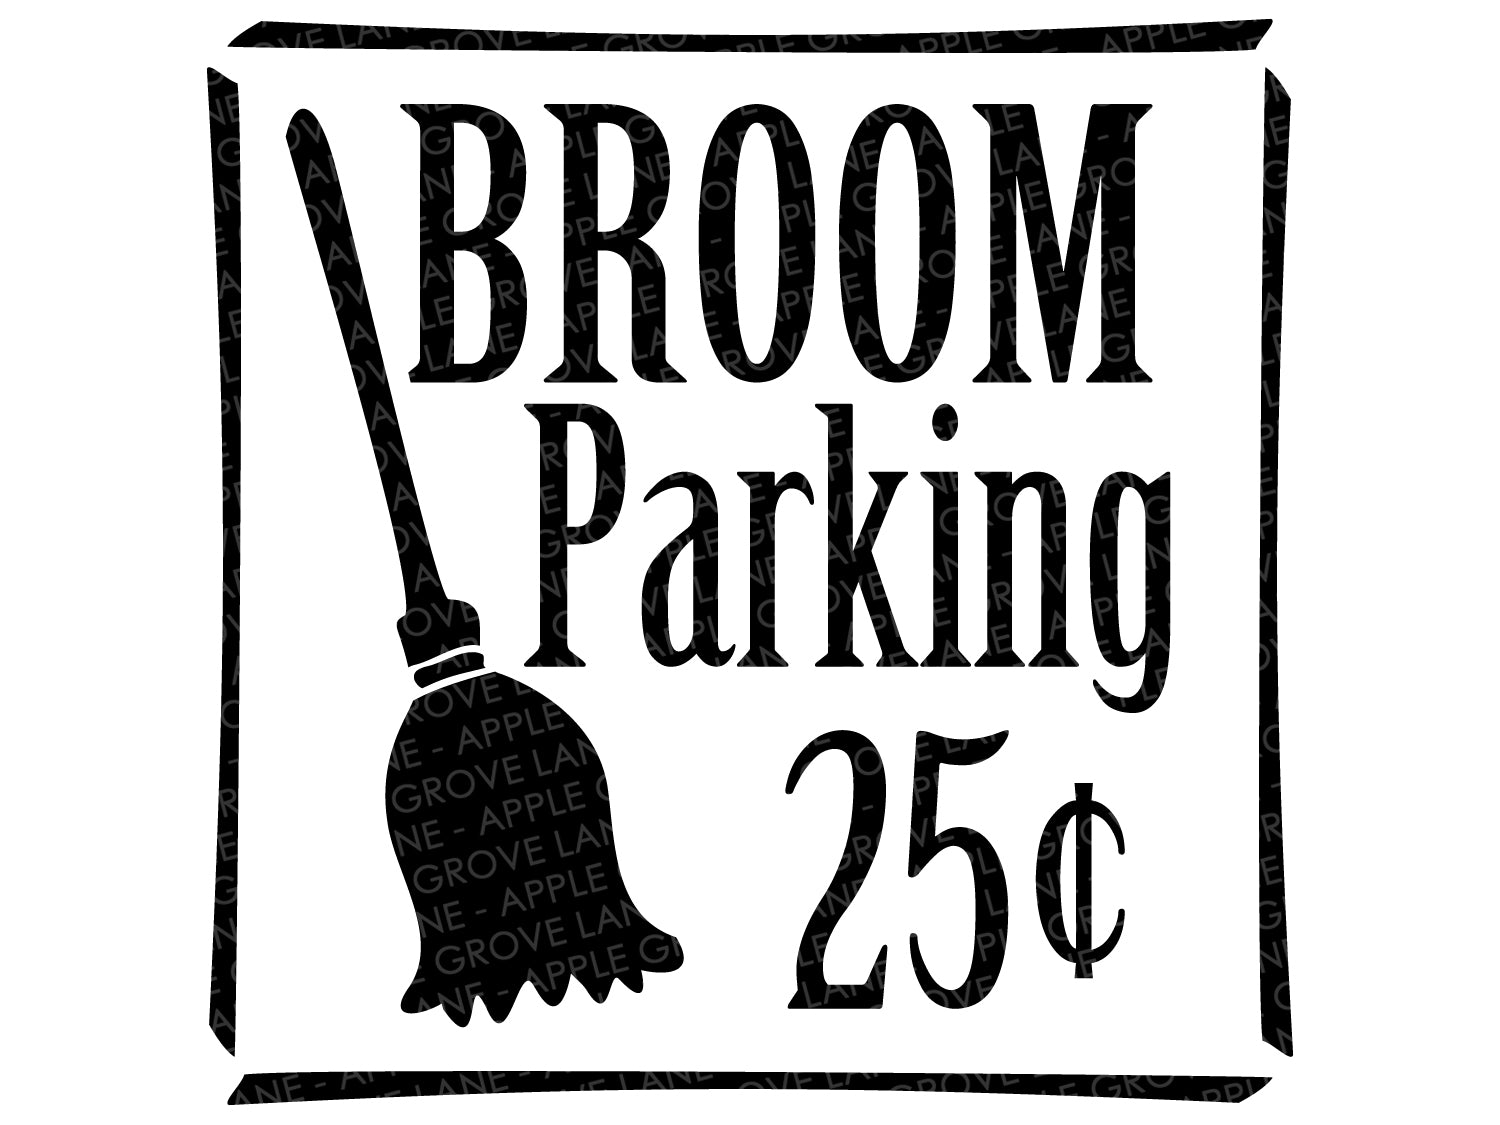 Broom Parking Svg - 25 cents Svg - Halloween Svg - Fall Svg - Witch Svg - Witch Broom Svg - Svg Eps Png Dxf